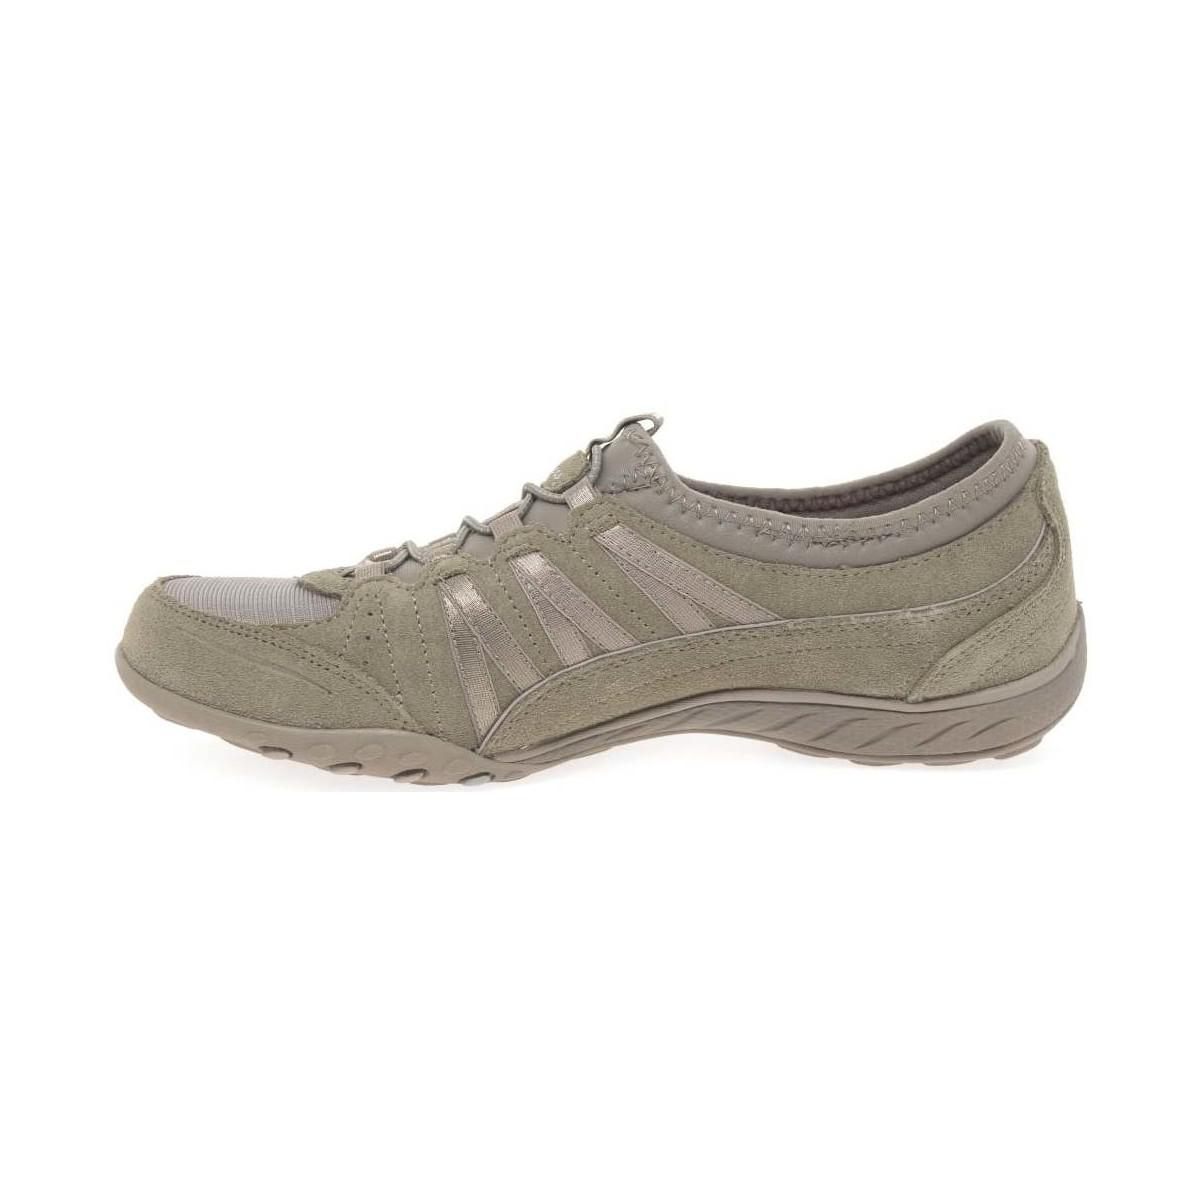 Skechers - Natural Breathe Easy Money Bags Womens Casual Sports Trainers  Women's Shoes (trainers). View Fullscreen